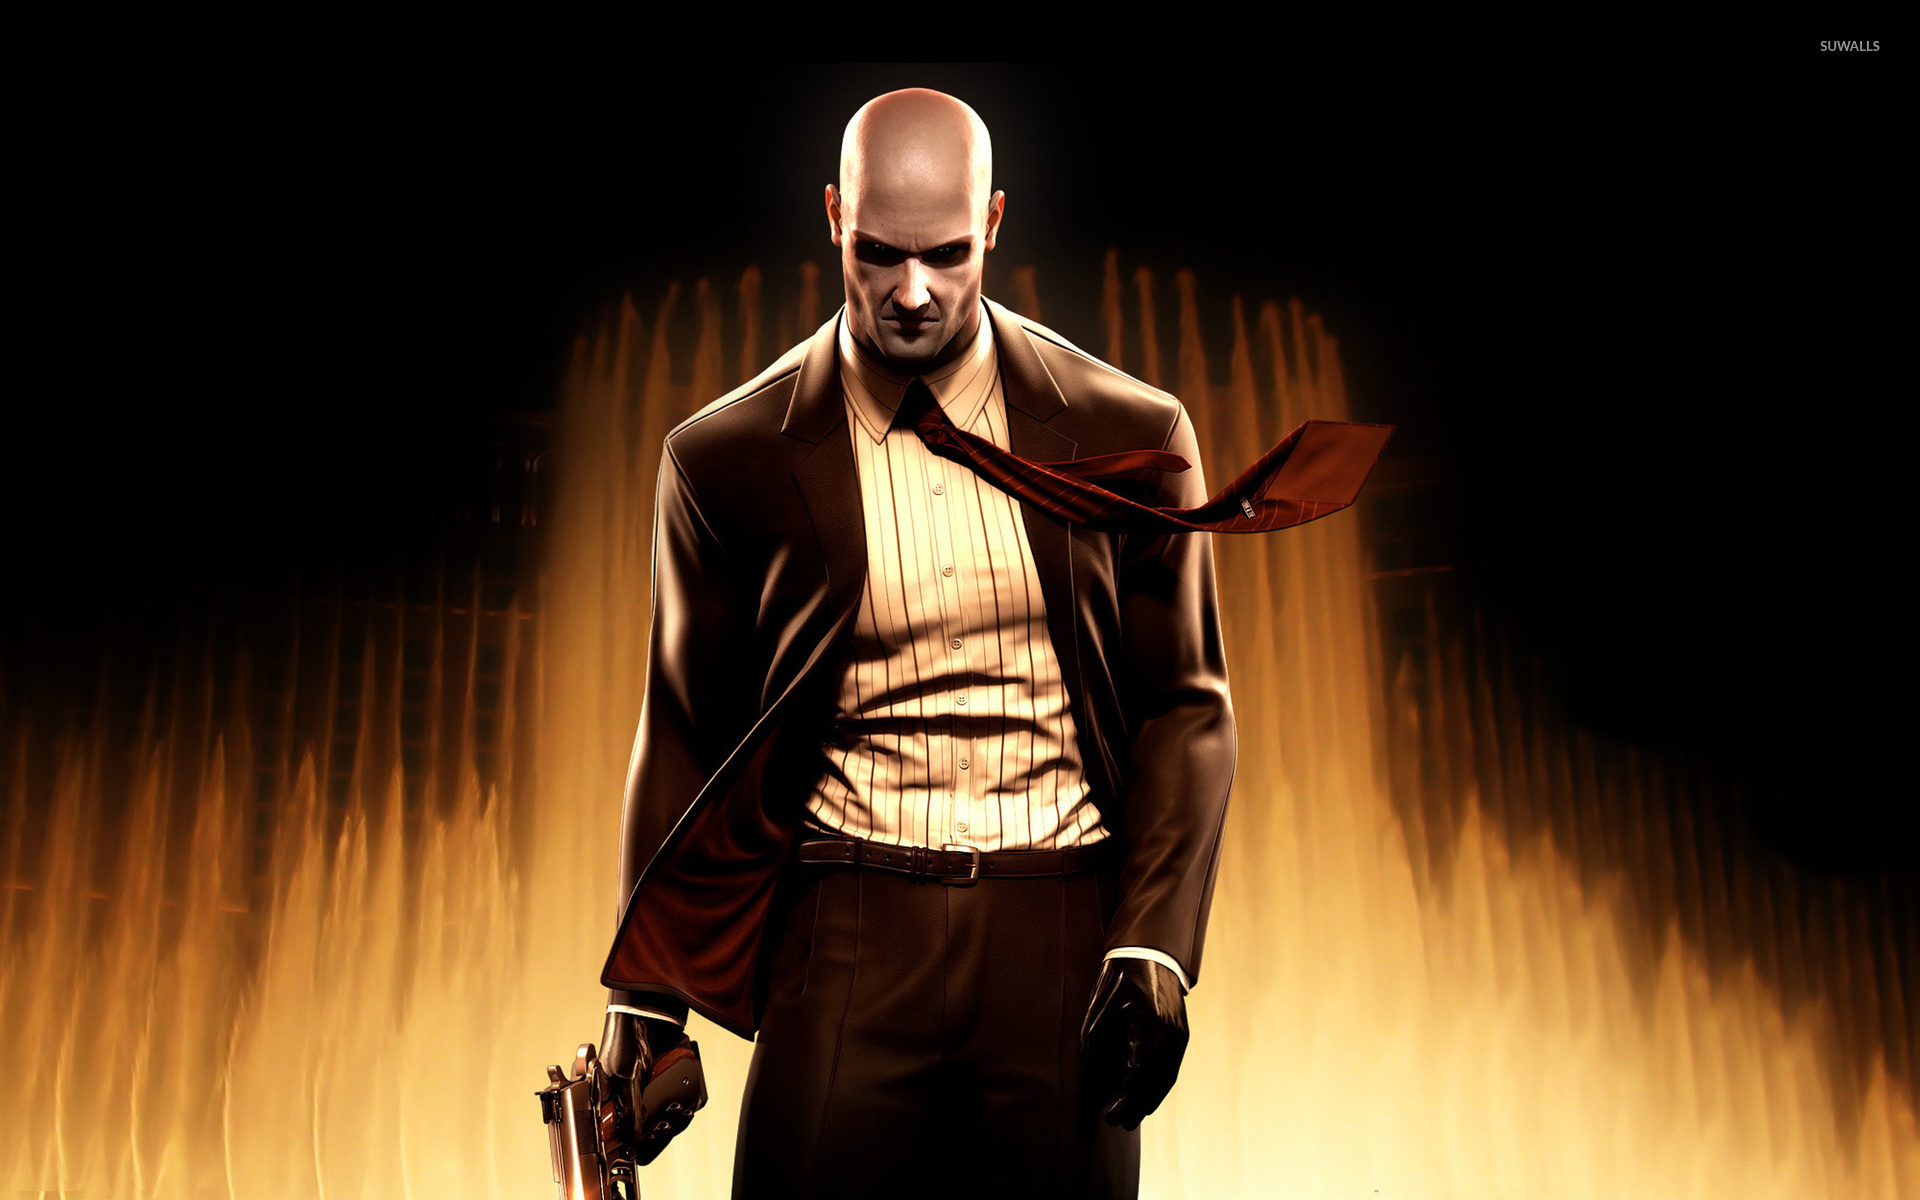 Hitman blood money free download brothersoft